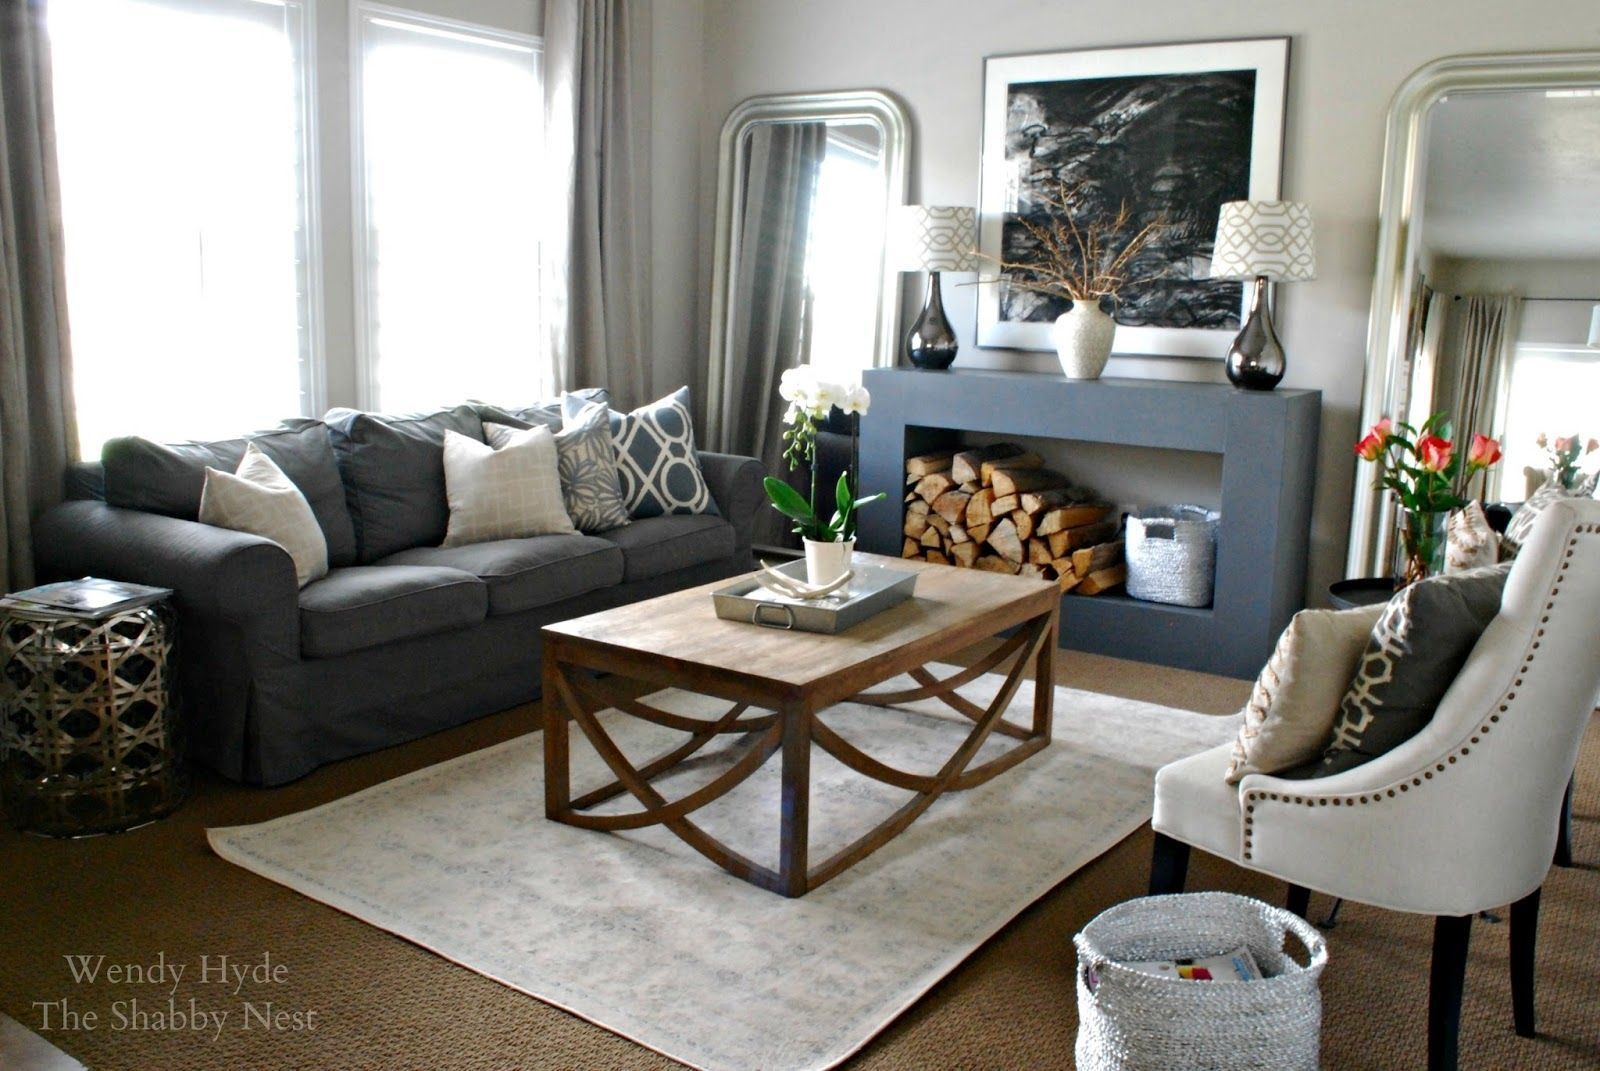 decorate living room with no fireplace paint ideas for chair rail focal point the shabby nest problem